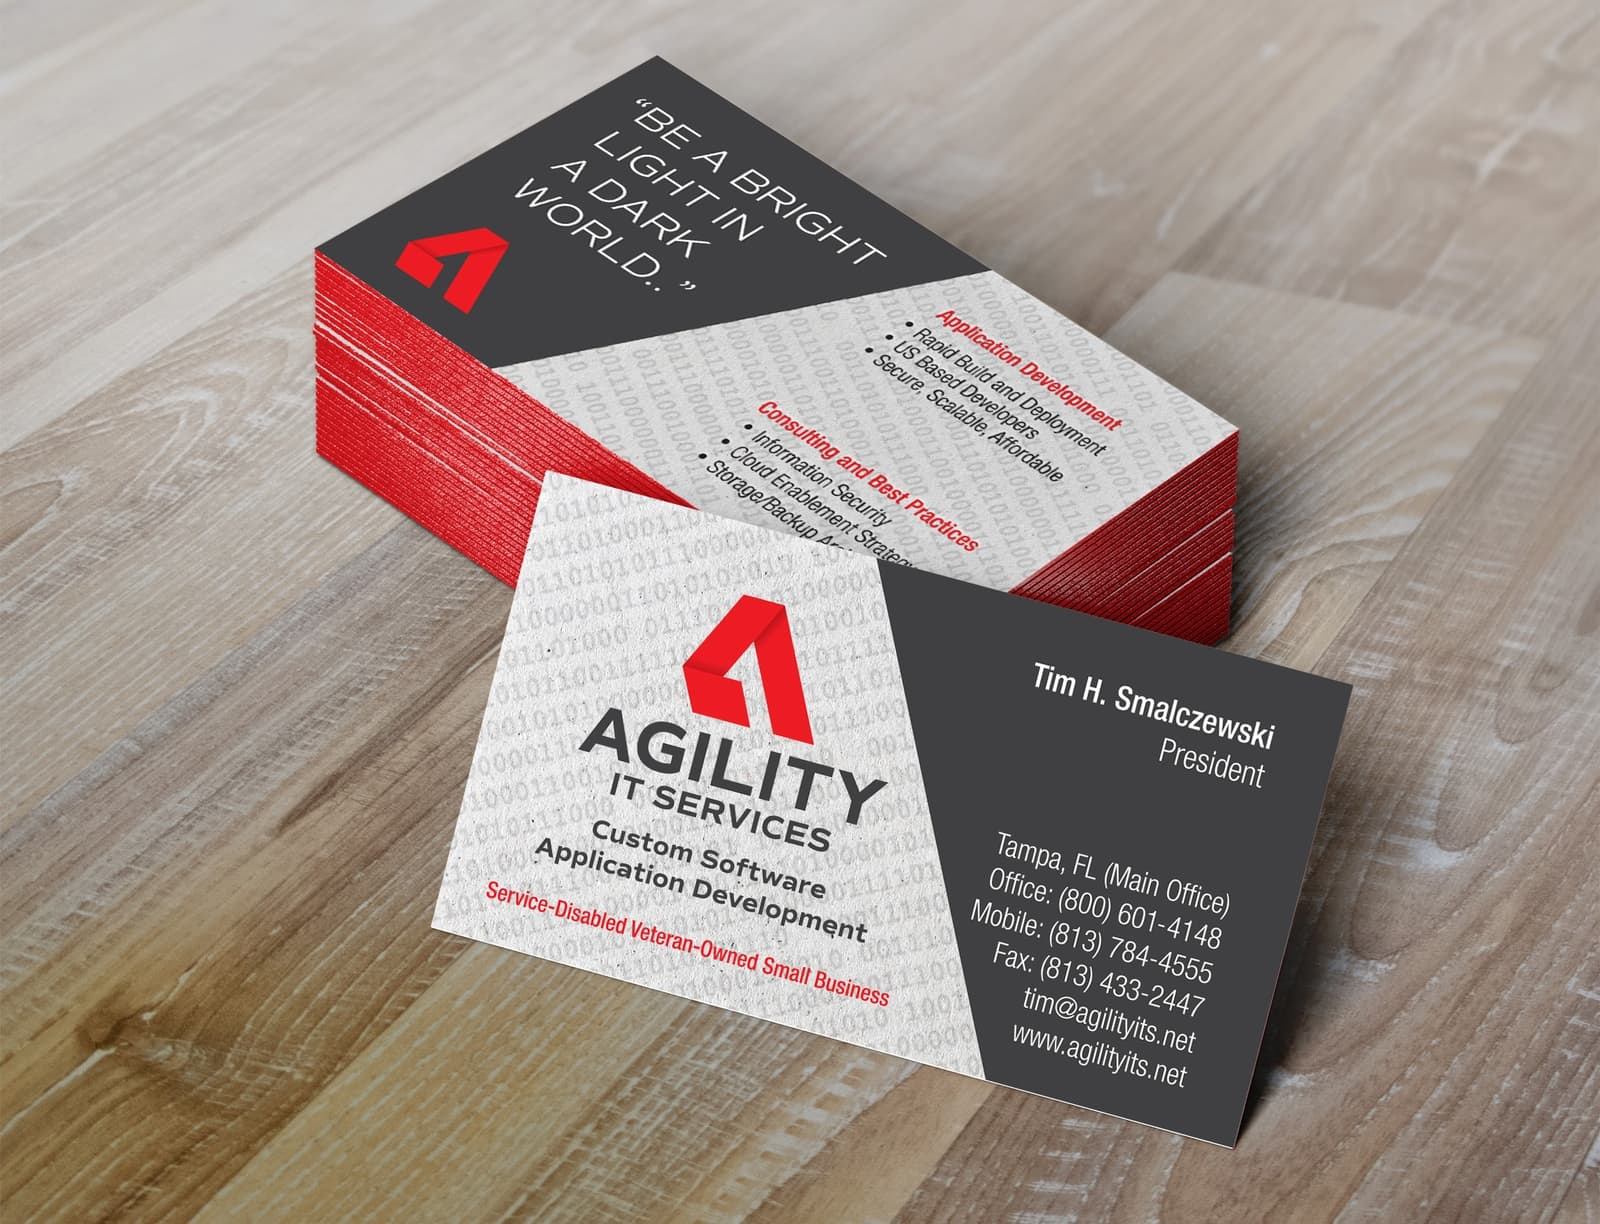 AGILITY IT Services Business Card